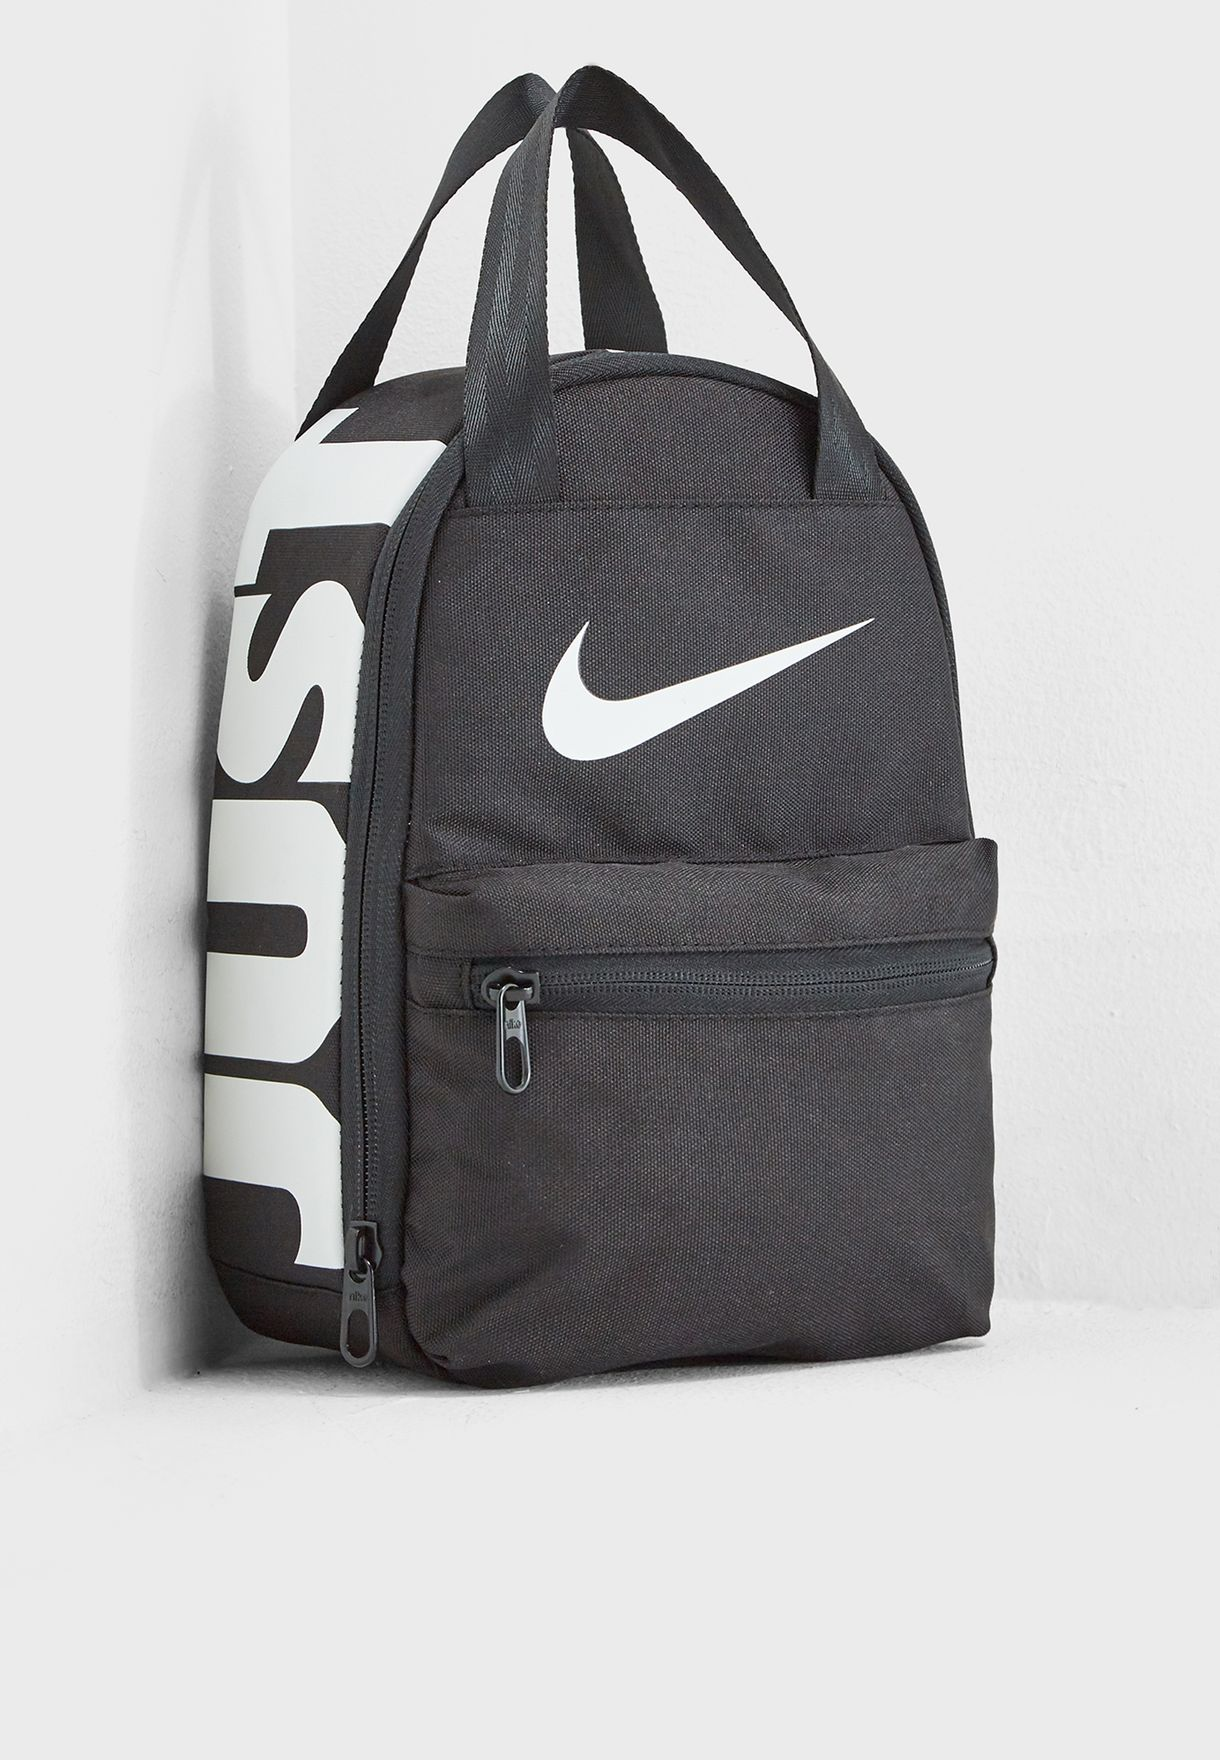 7bccb6f7e66a1 Shop Nike black Brasilia Just Do It Backpack 9A2743-023 for Kids in ...